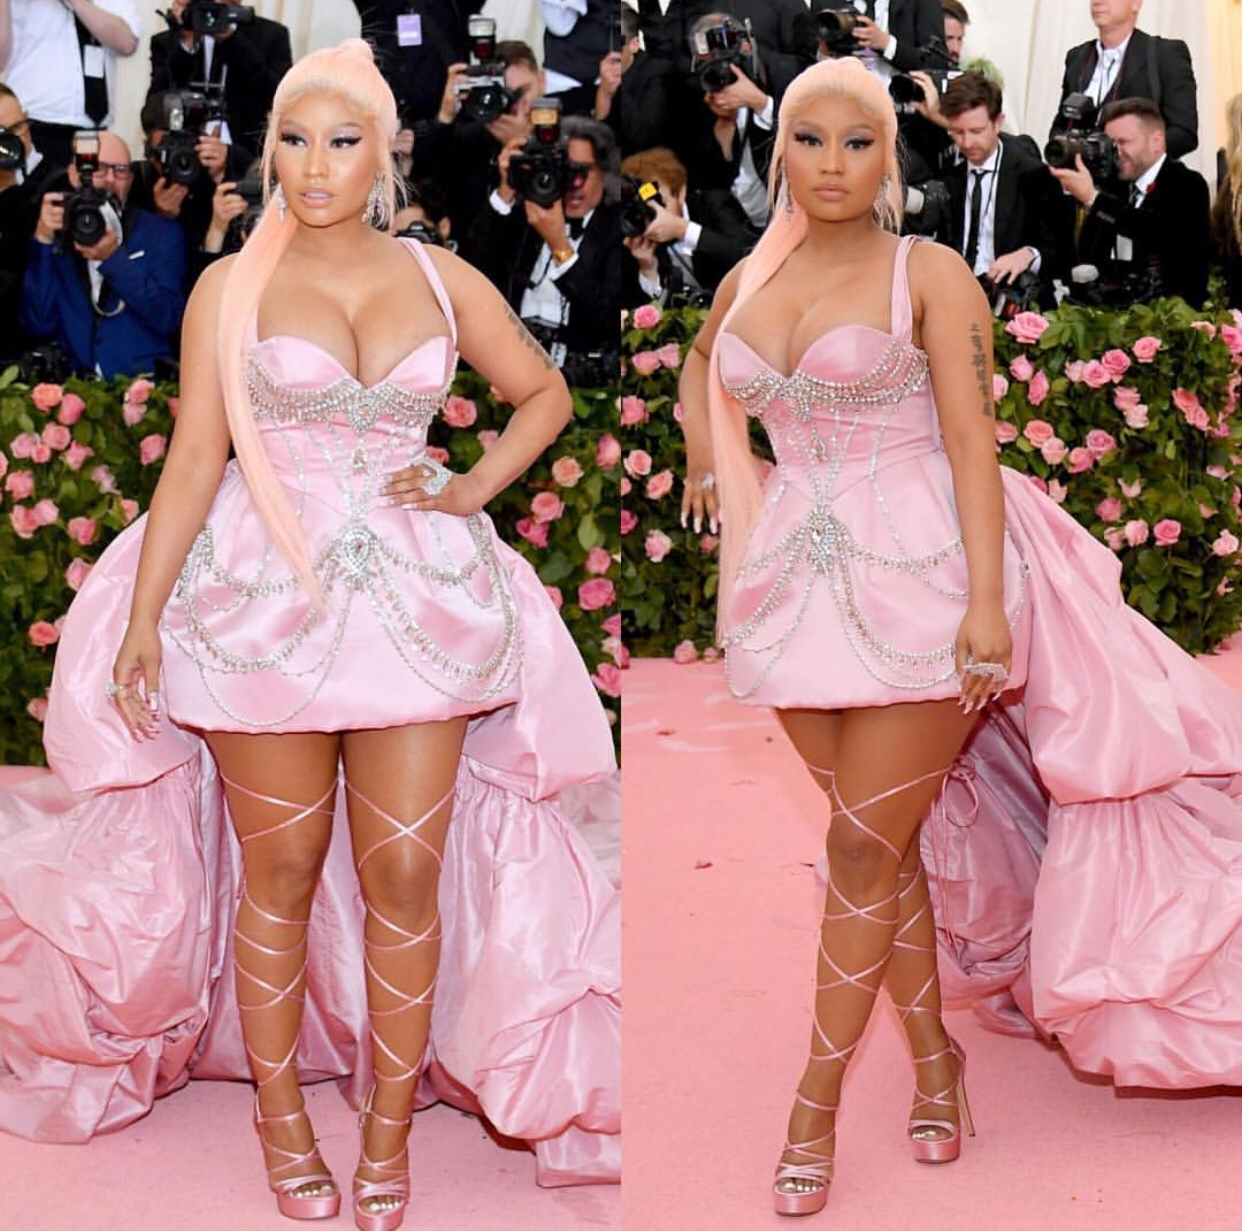 The queen turned up to the met gala for us Barbz looking fire as fuck Xxxx